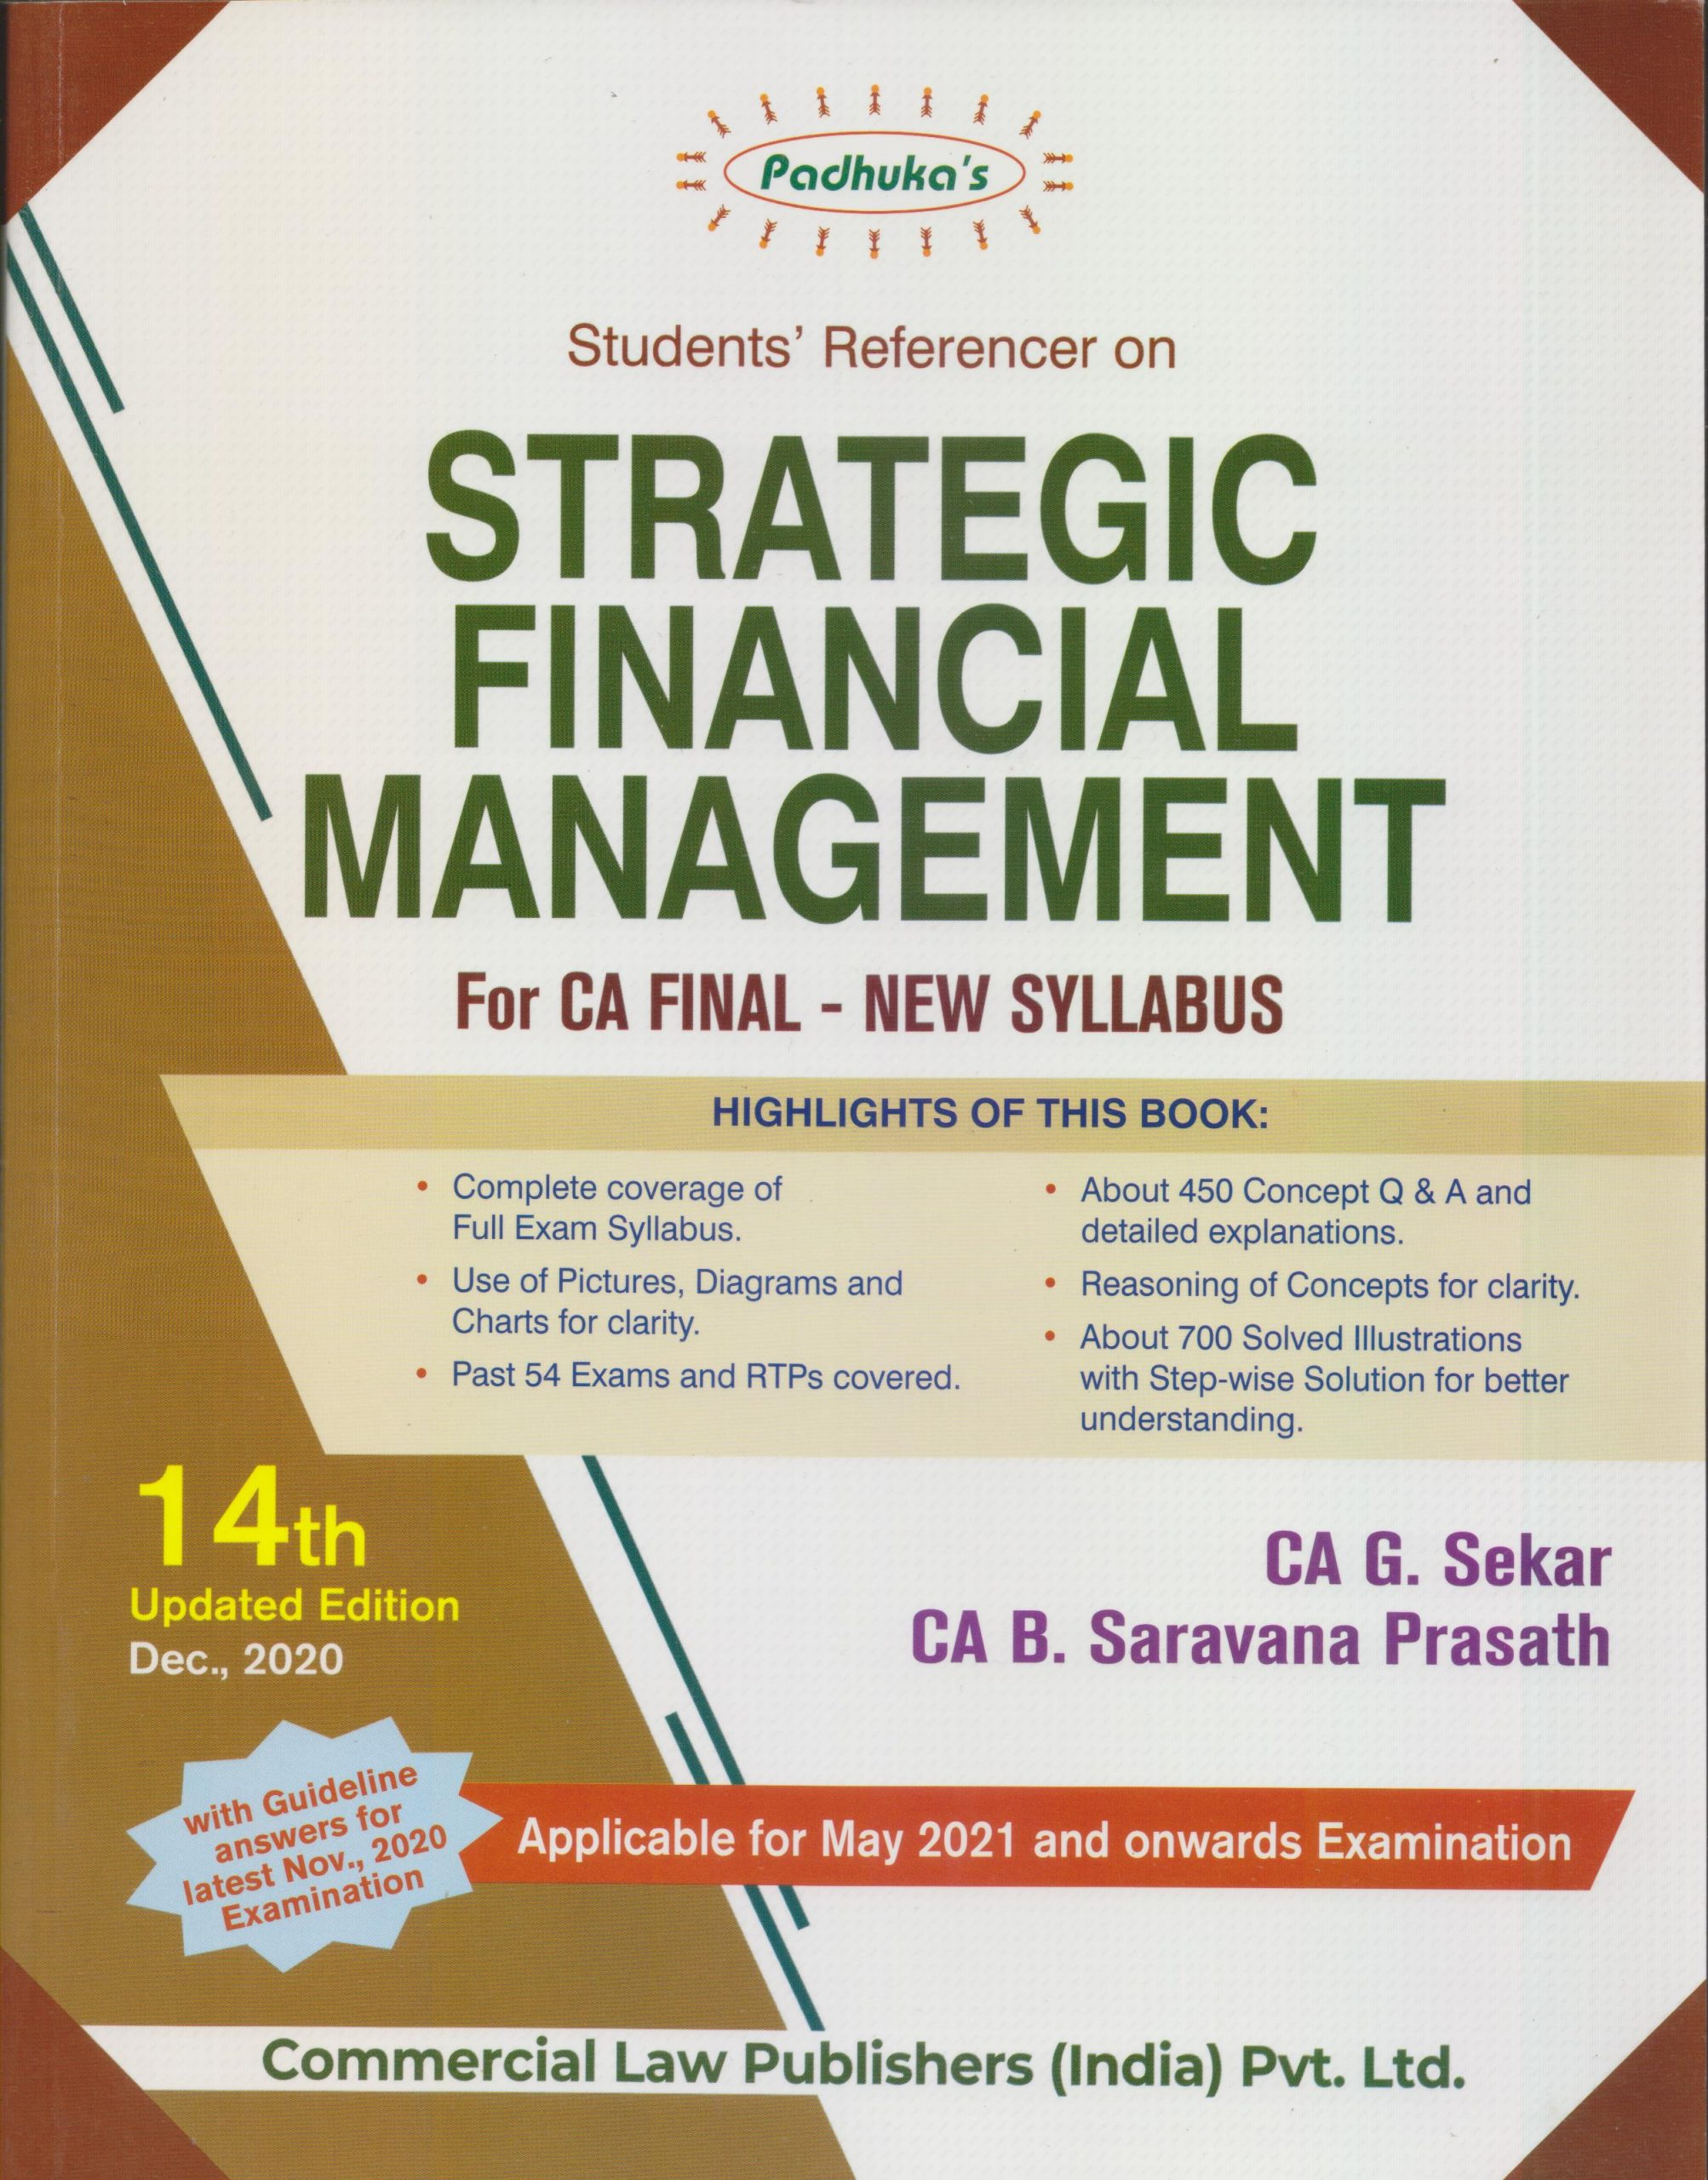 Padhuka Students Referencer on Strategic Financial Management For CA Final New Syllabus CA Final by G Sekar , B Sarvana Prasath Applicable for 2021 Exam(Commercial law publishers)